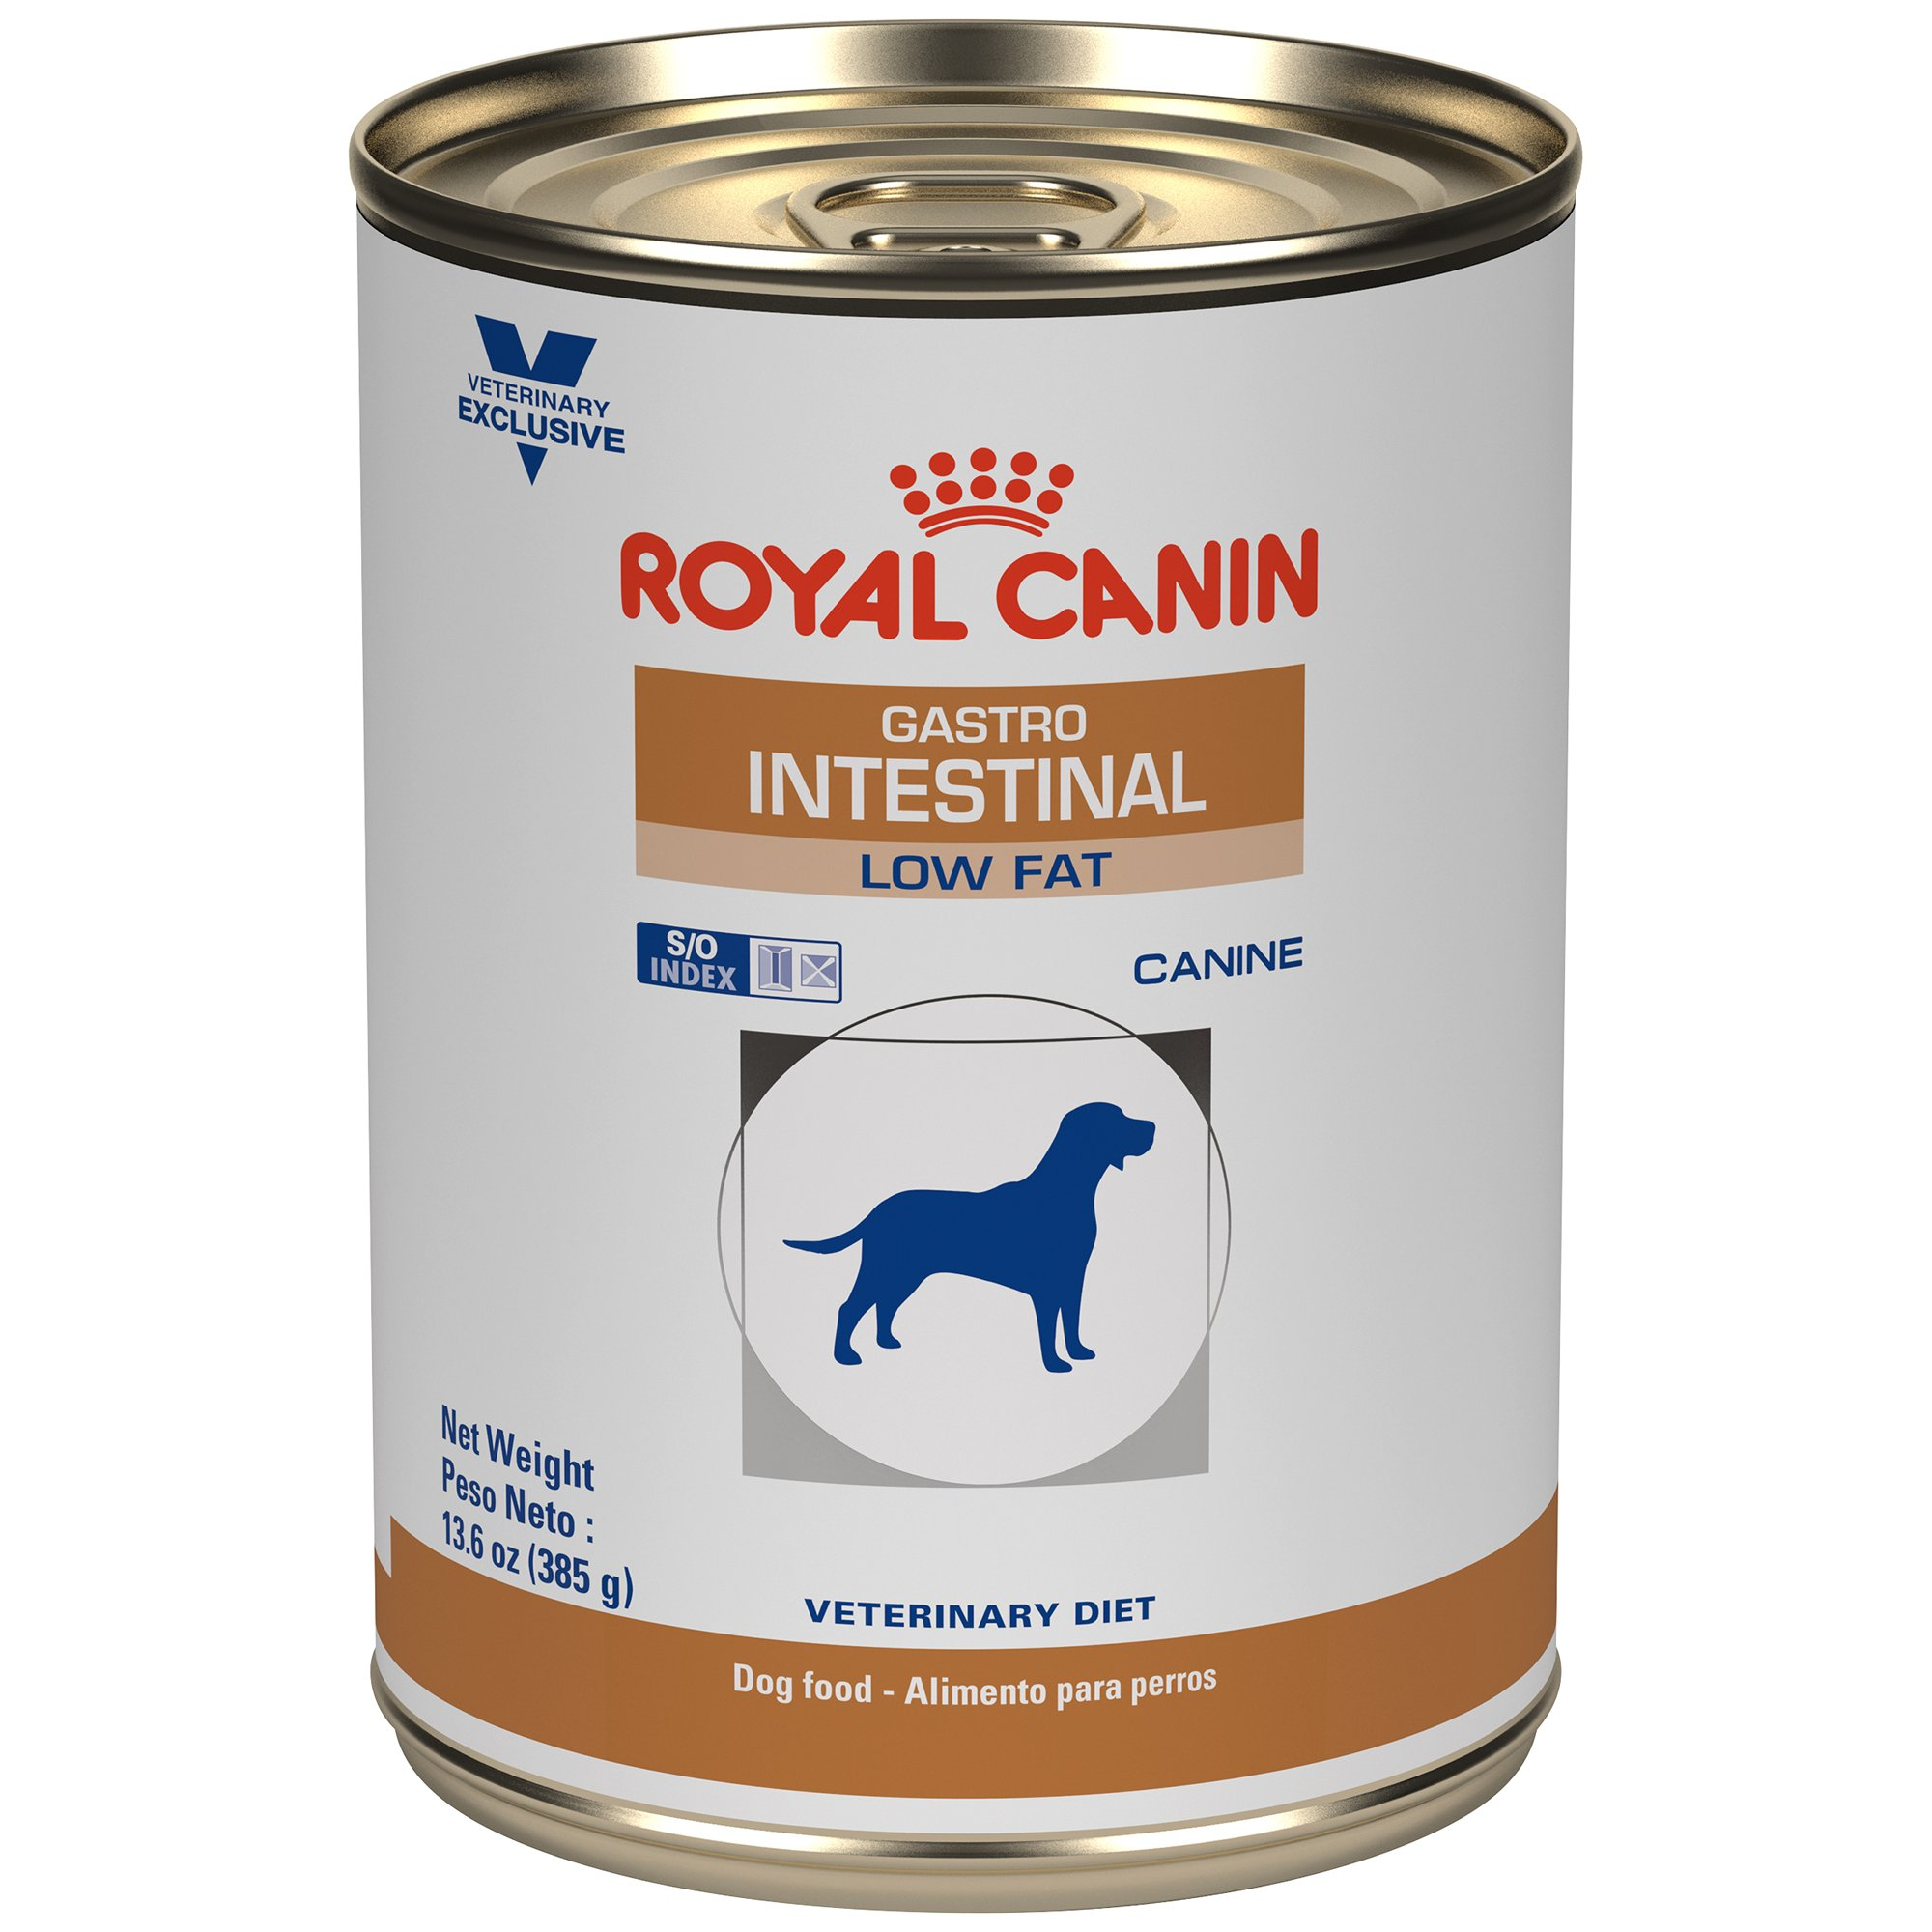 Royal Canin Gastrointestinal Low Fat Canned Dog Food